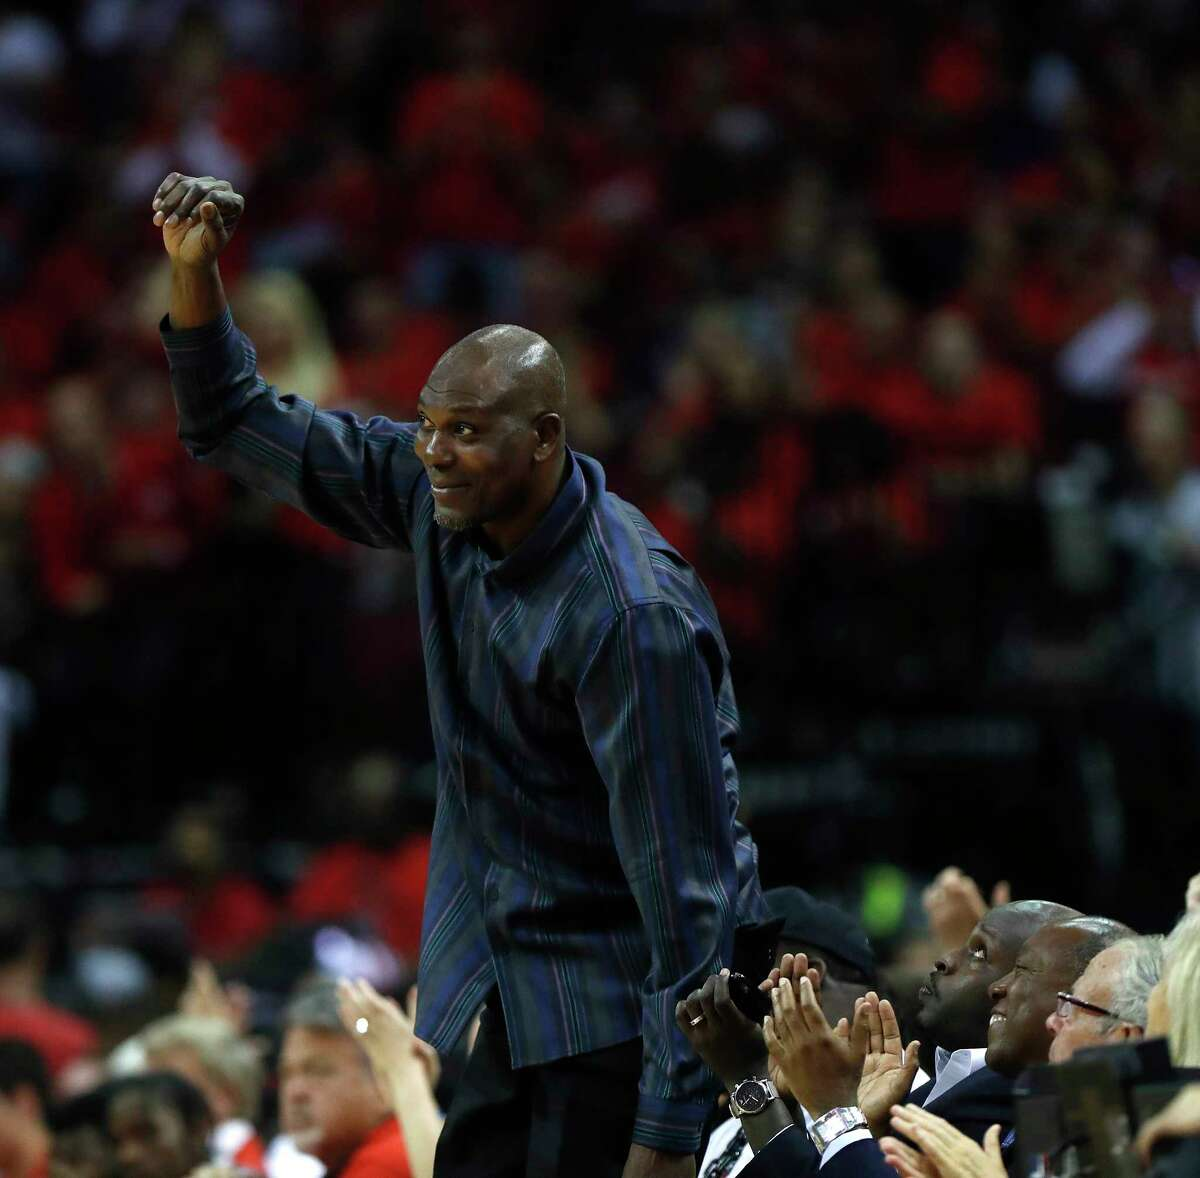 Hakeem Olajuwon waves to the crowd in the second half of Game 5 of a Western Conference quarterfinals of the 2017 NBA playoffs, April 24, 2017, in Houston. ( Karen Warren / Houston Chronicle ) Houston Rockets guard James Harden (13) tries to get Patrick Beverley off the court after the Rockets beat Oklahoma City Thunder in Game 5 of a Western Conference quarterfinals of the 2017 NBA playoffs, April 24, 2017, in Houston. ( Karen Warren / Houston Chronicle )